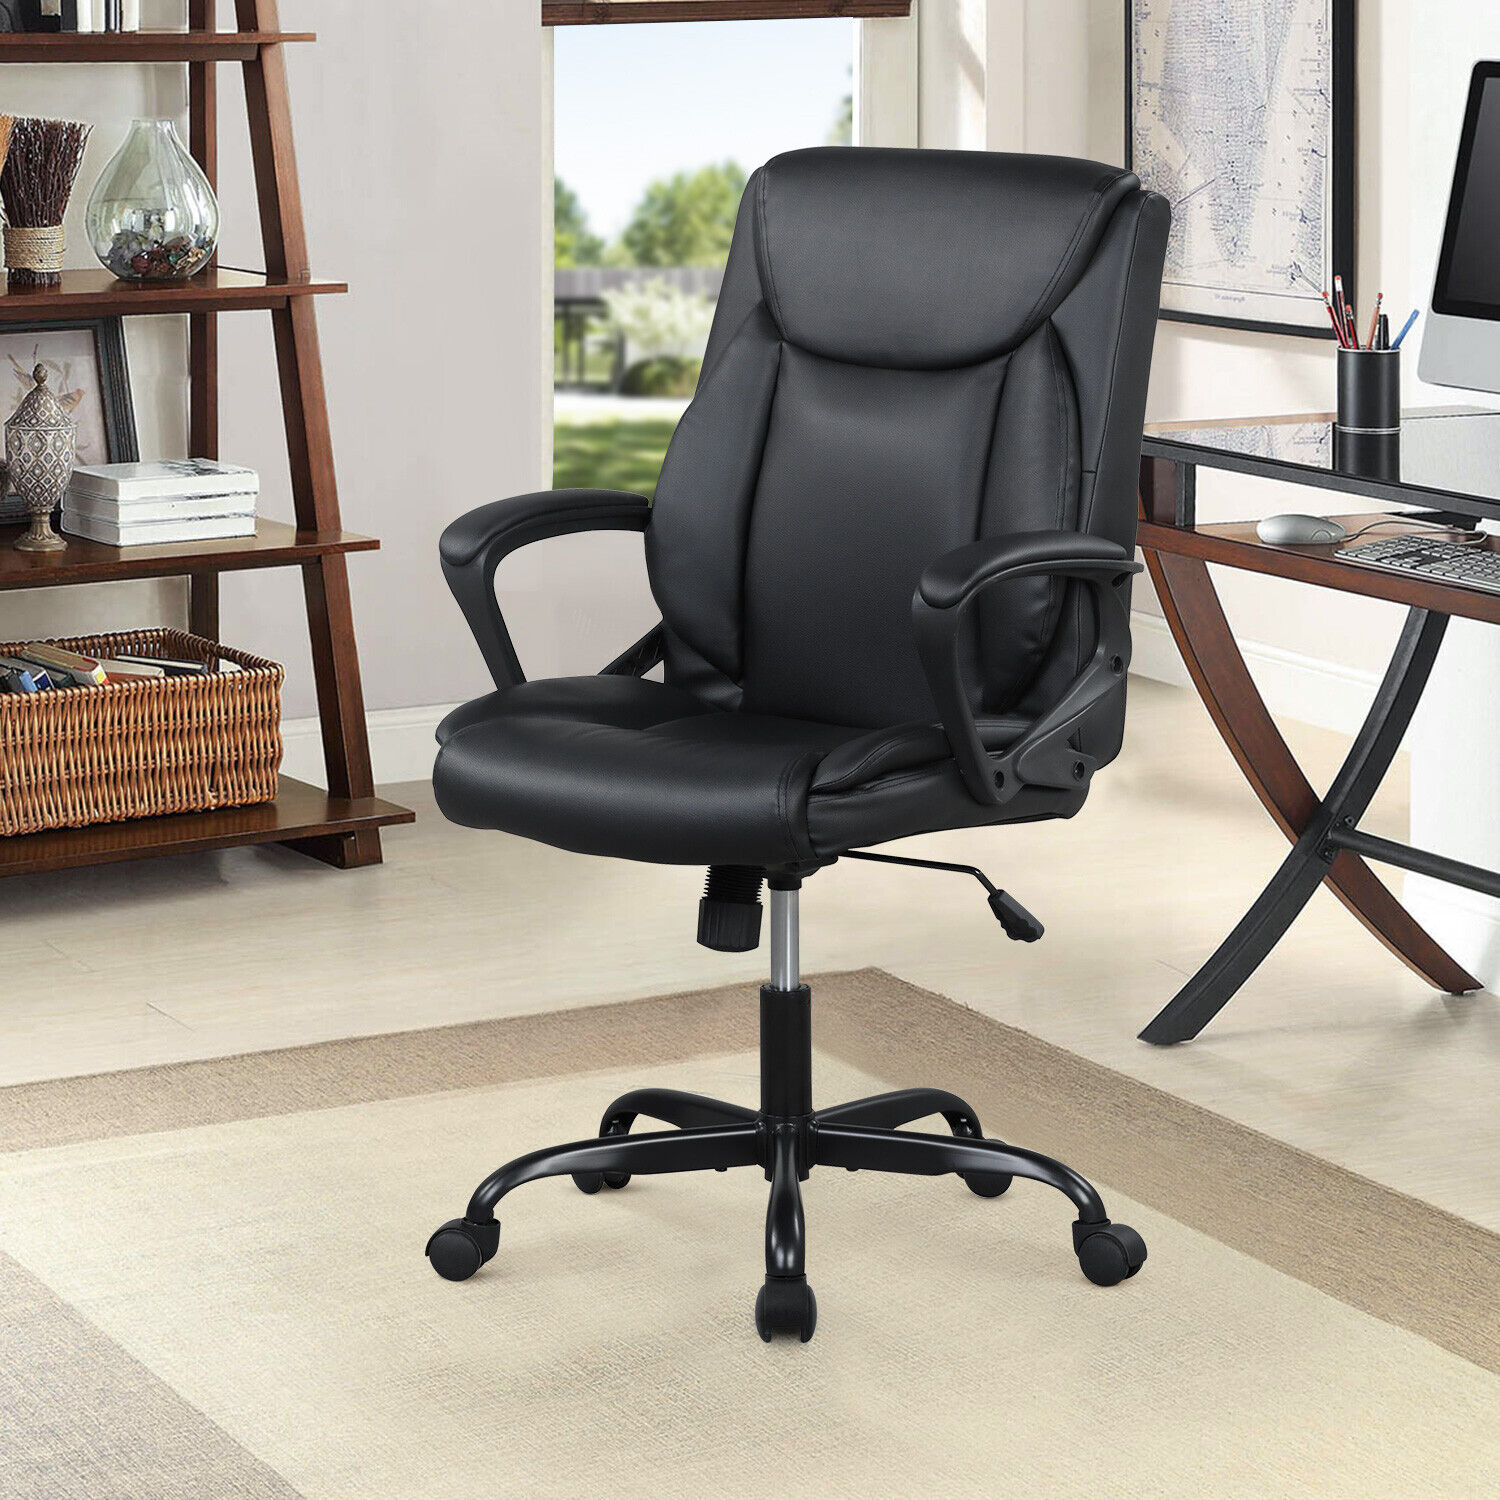 Home Office Chair Ergonomic Desk Chair PU Leather Task Chair Business & Industrial